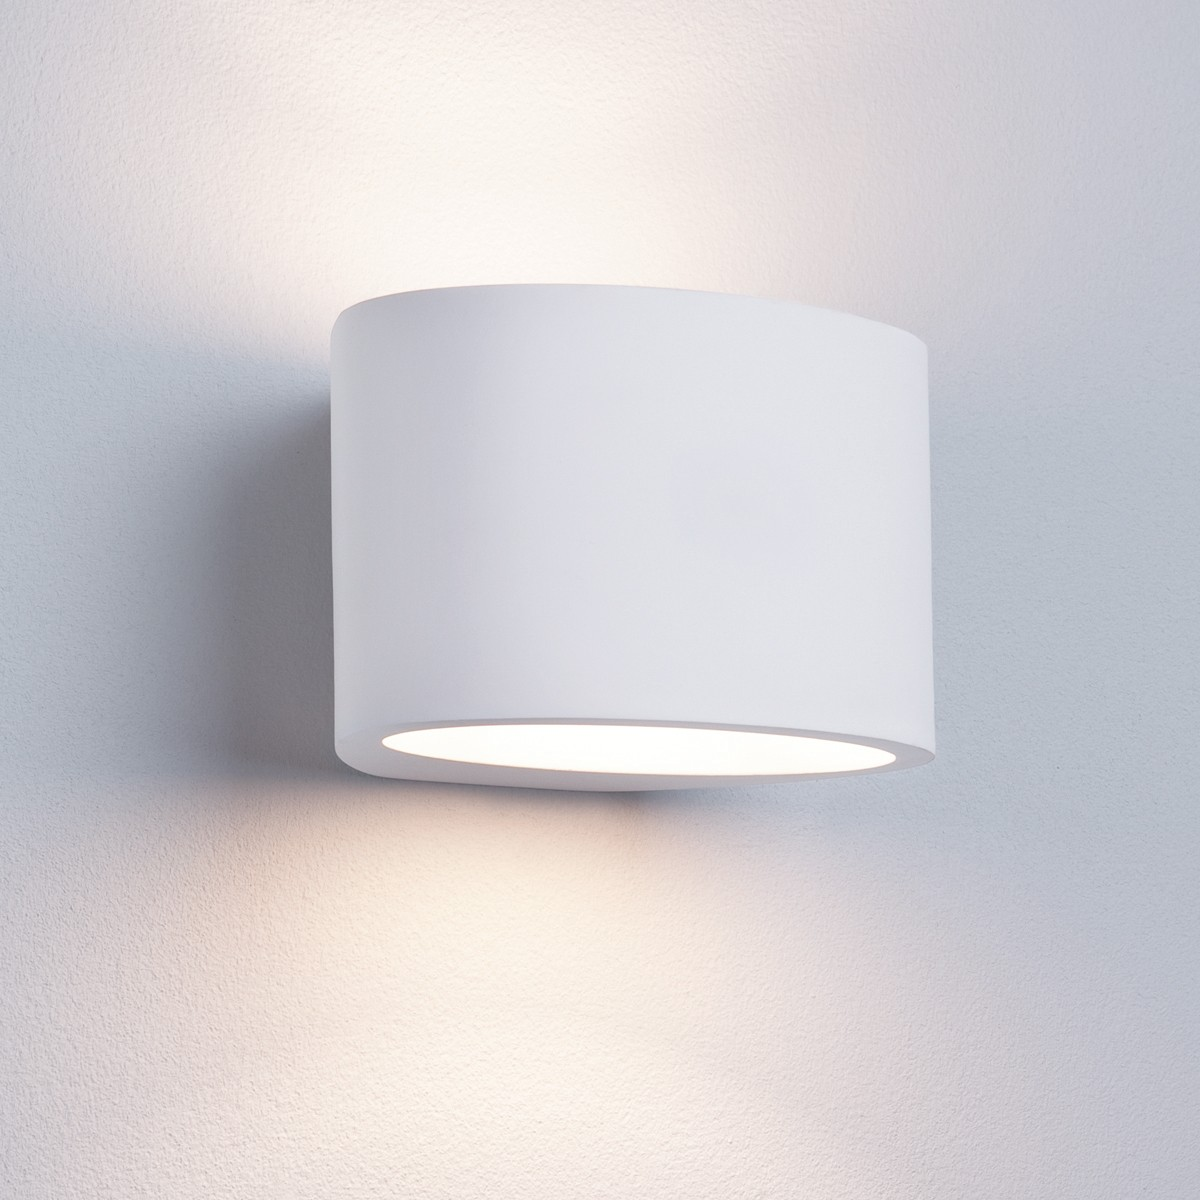 Contemporary Plaster Wall Lights : GYPSUM WHITE PLASTER OVAL LIGHT WHICH IS PAINTABLE 8721 Stanways Stoves and Lights